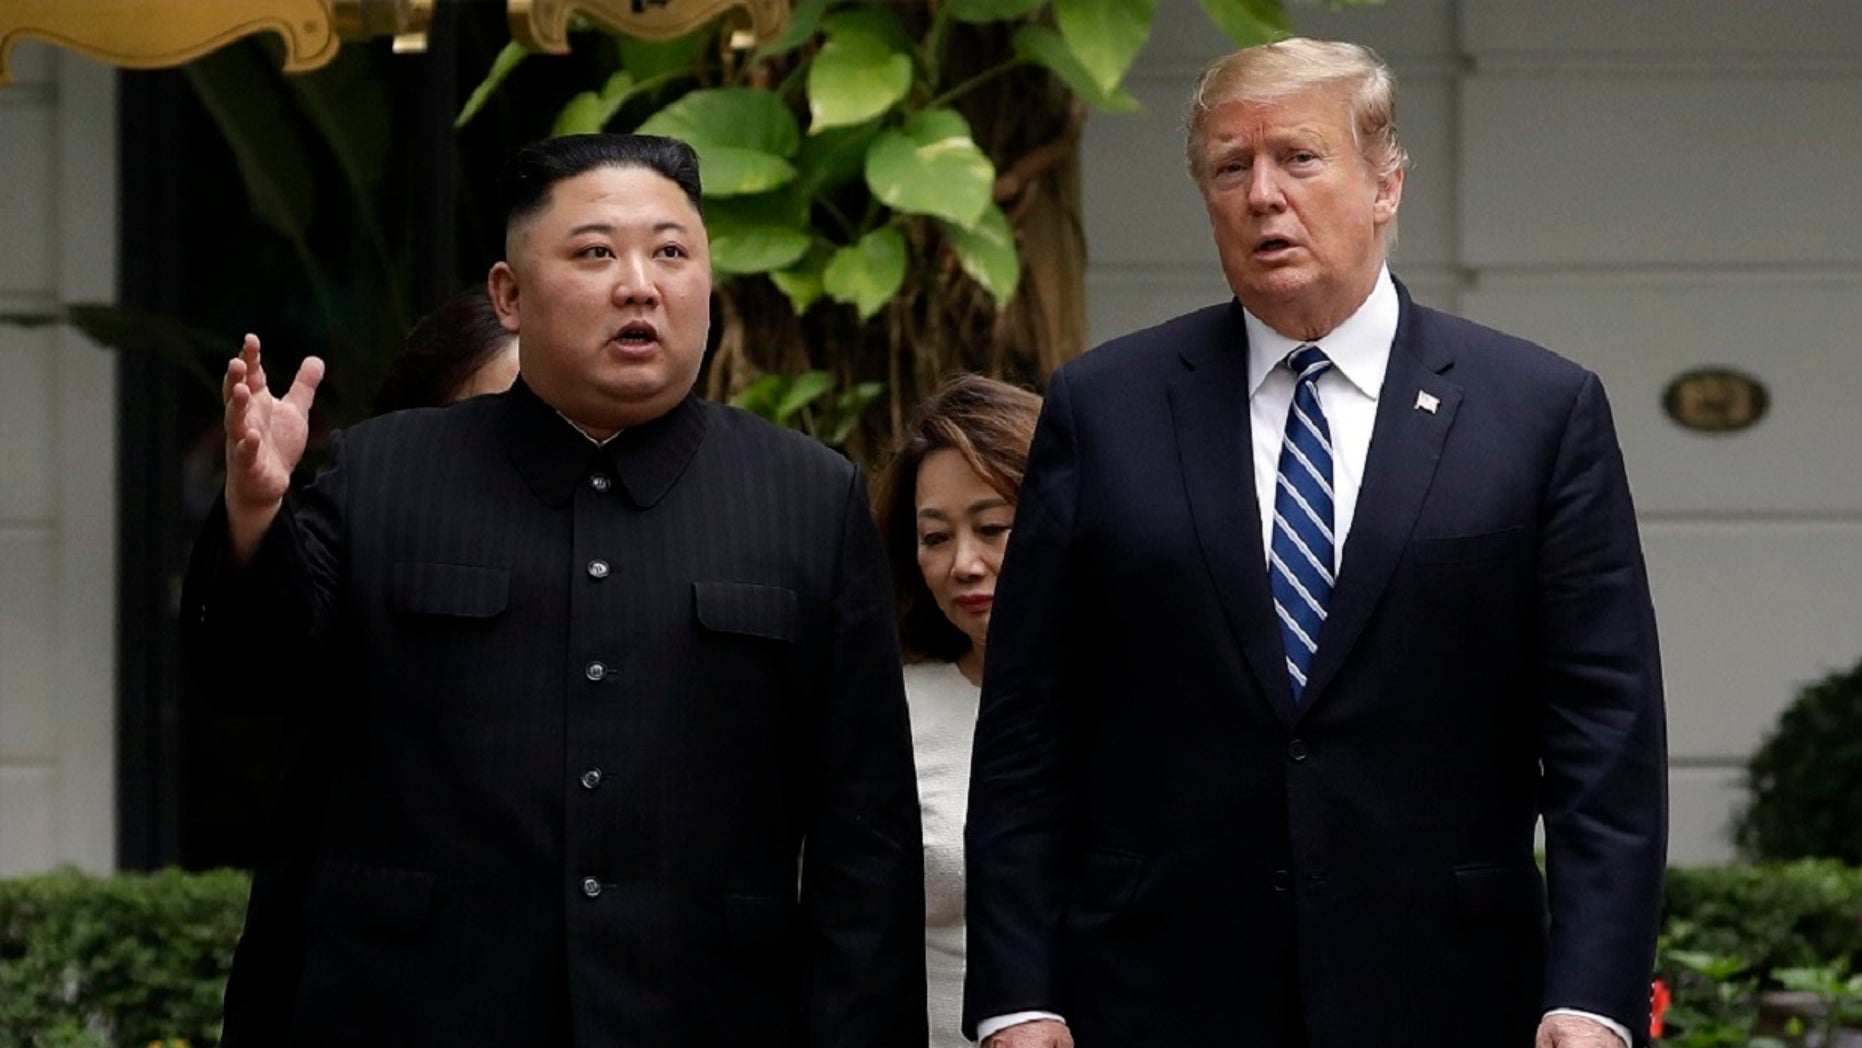 President Trump and North Korean leader Kim Jong Un take a walk after their first meeting at the Sofitel Legend Metropole Hanoi hotel, in Hanoi in February. (Associated Press)